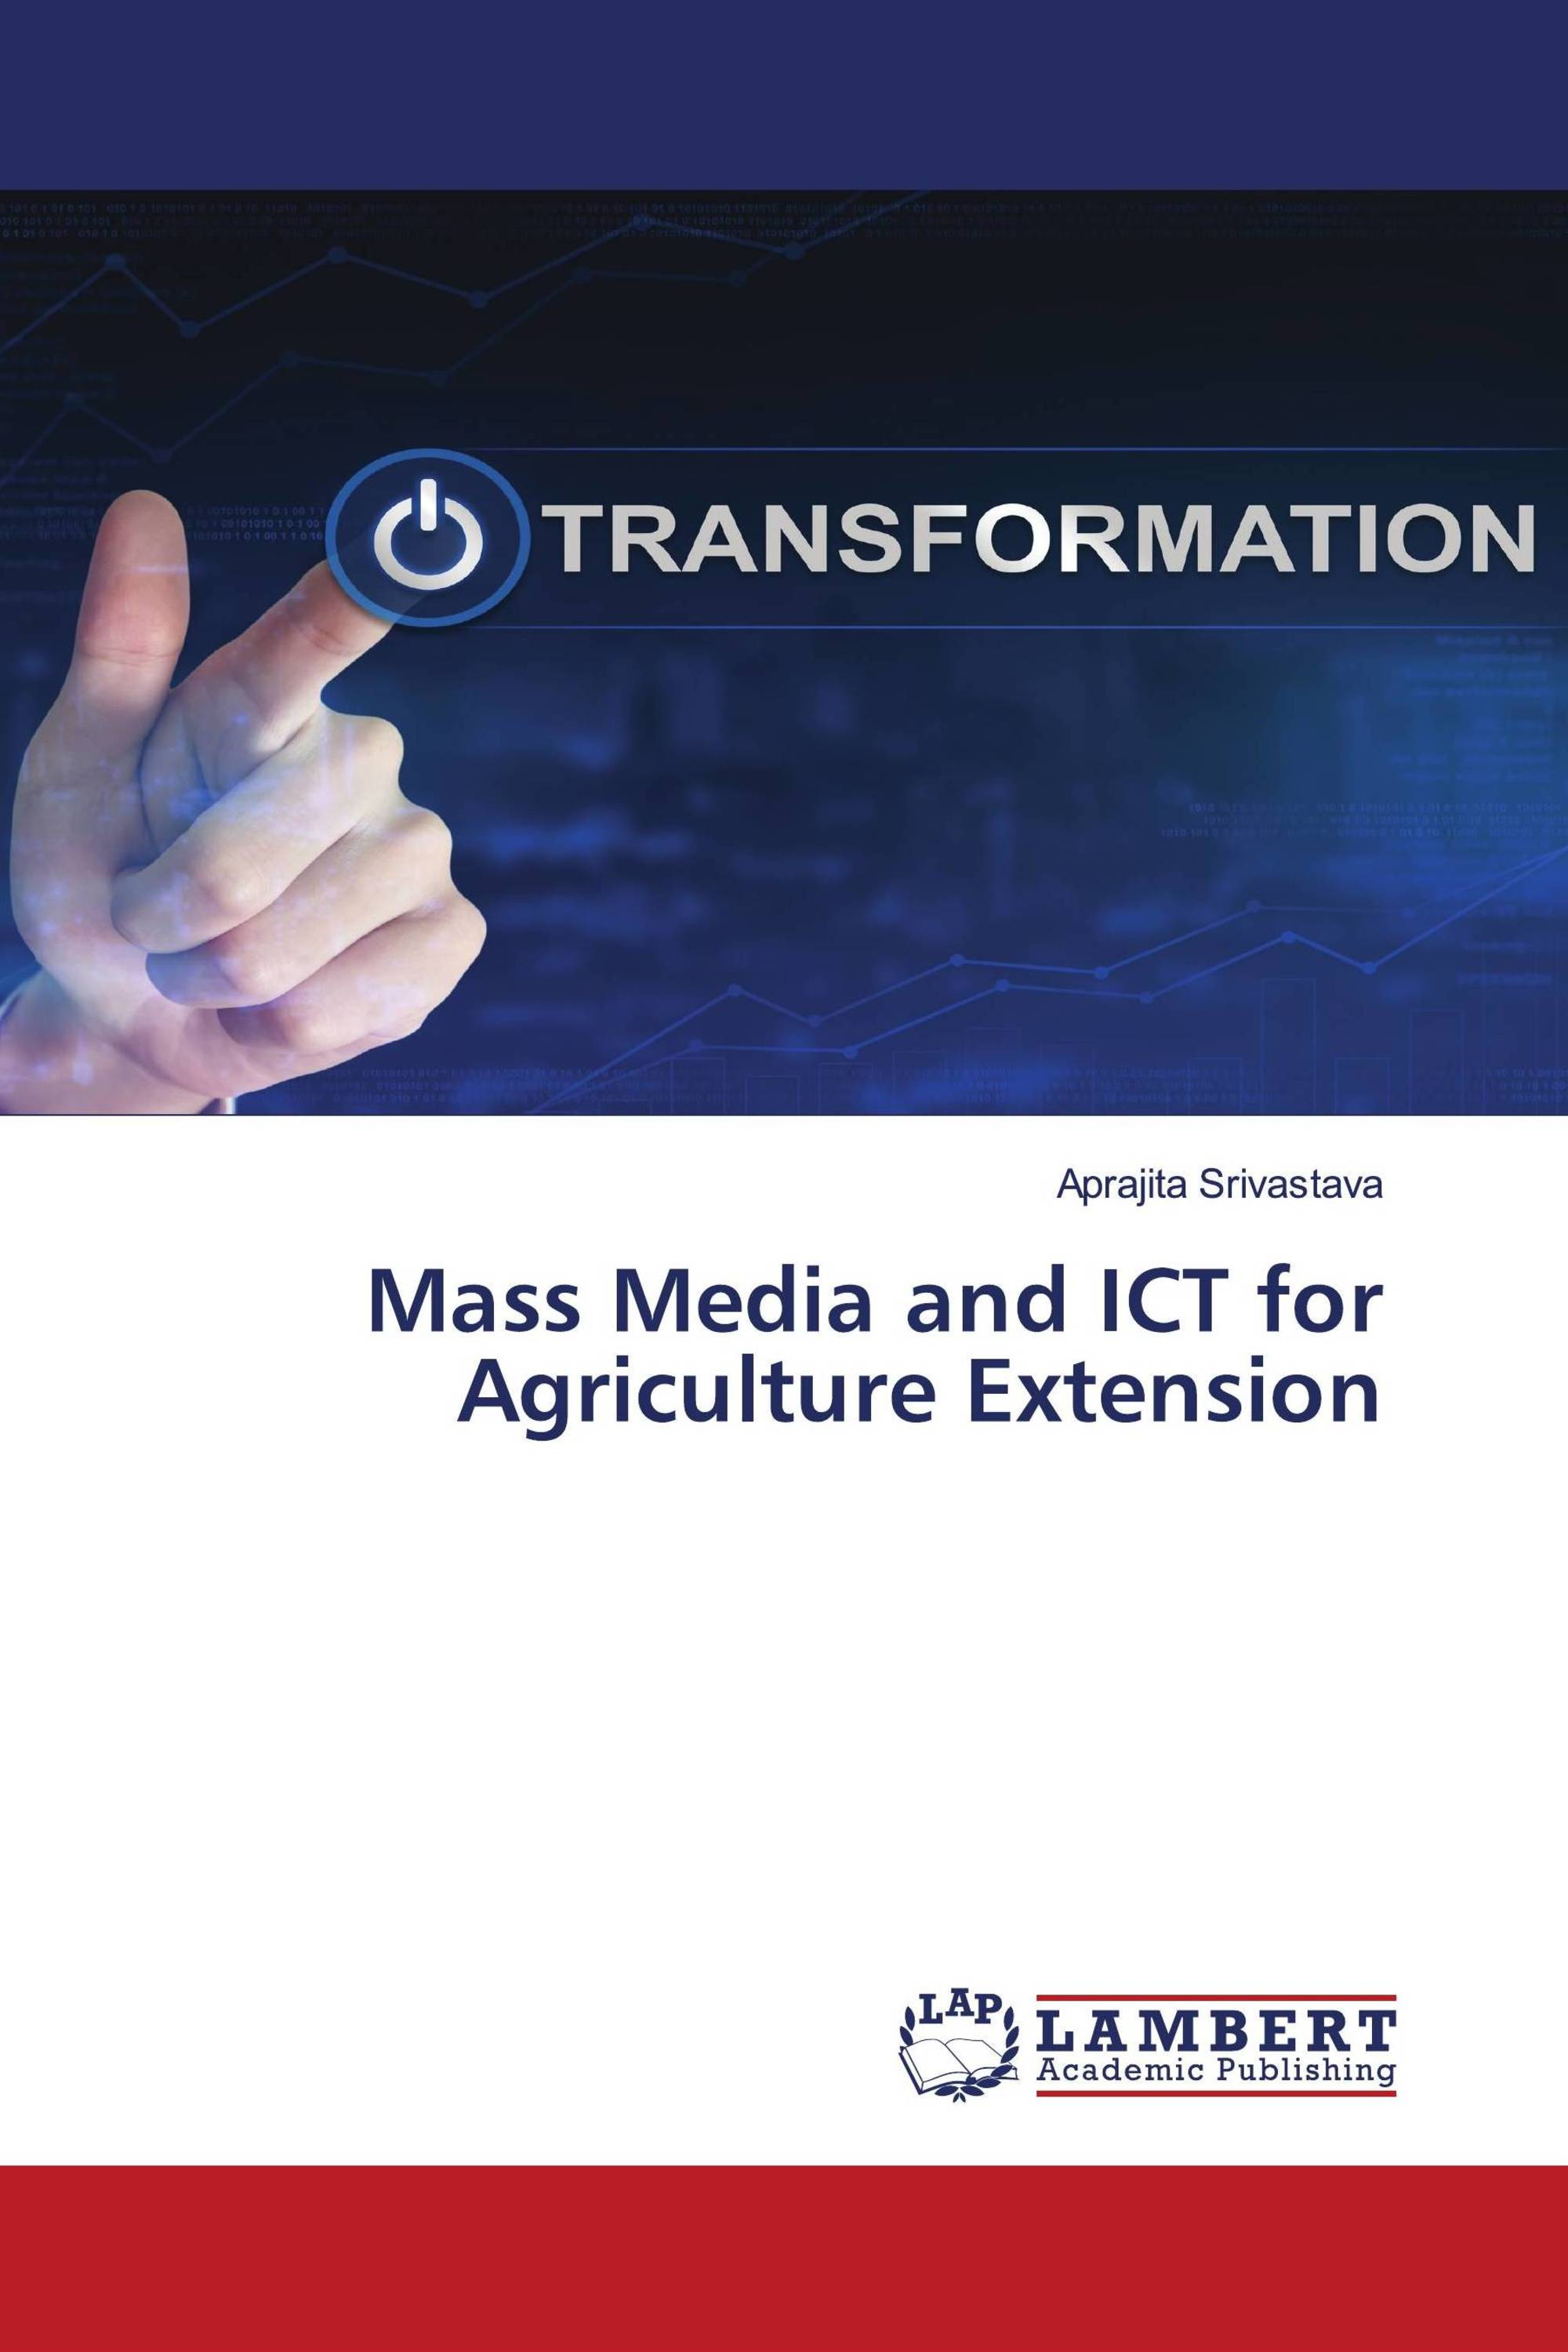 Mass Media and ICT for Agriculture Extension